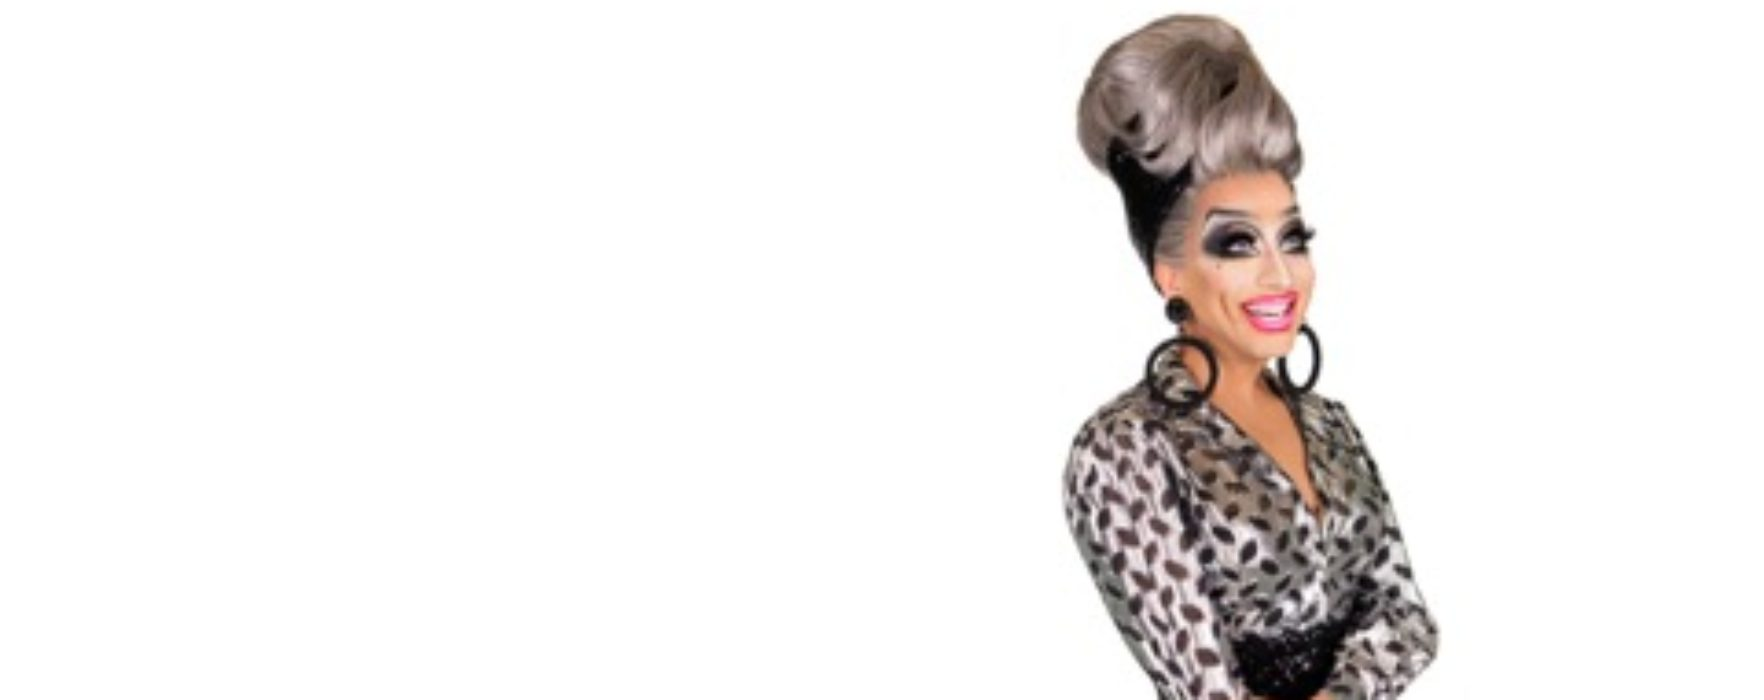 BIANCA DEL RIO REVEALS UK TOUR DATES